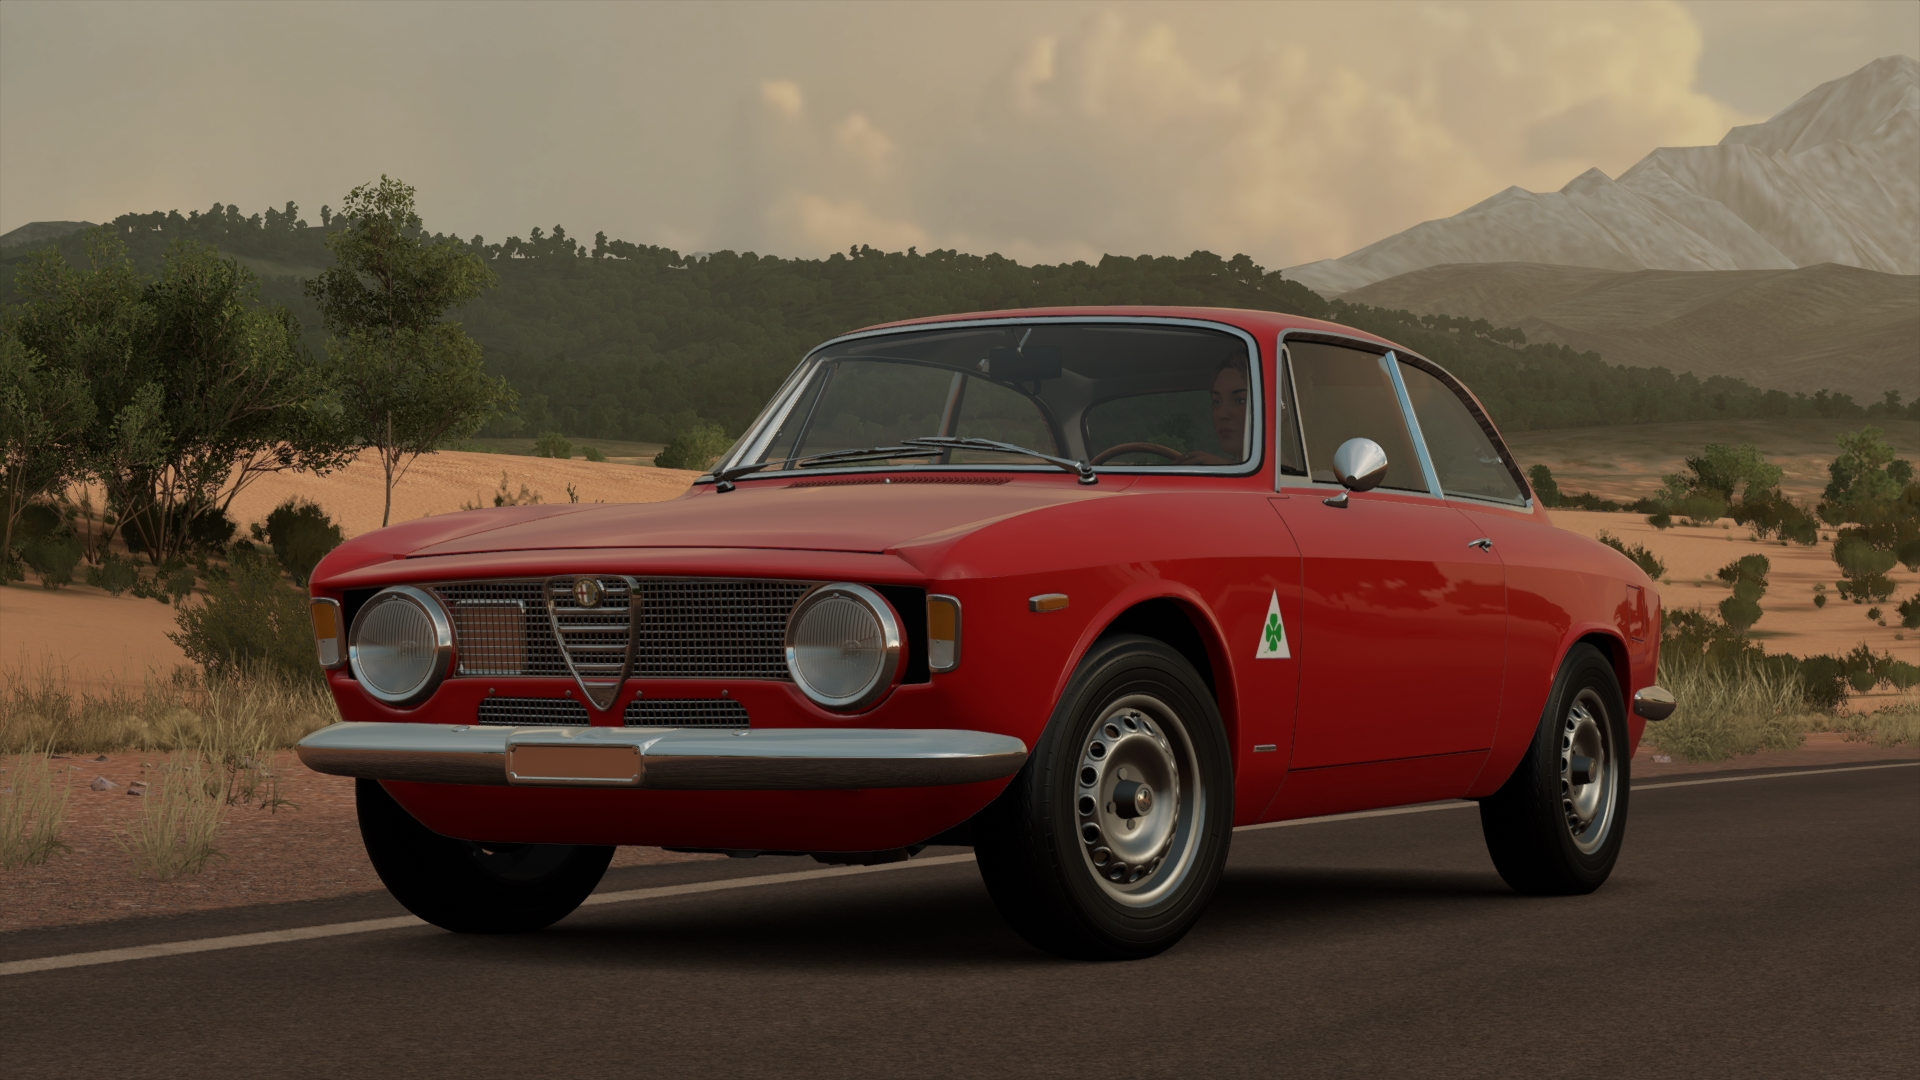 alfa romeo giulia sprint gta stradale forza motorsport wiki fandom powered by wikia. Black Bedroom Furniture Sets. Home Design Ideas